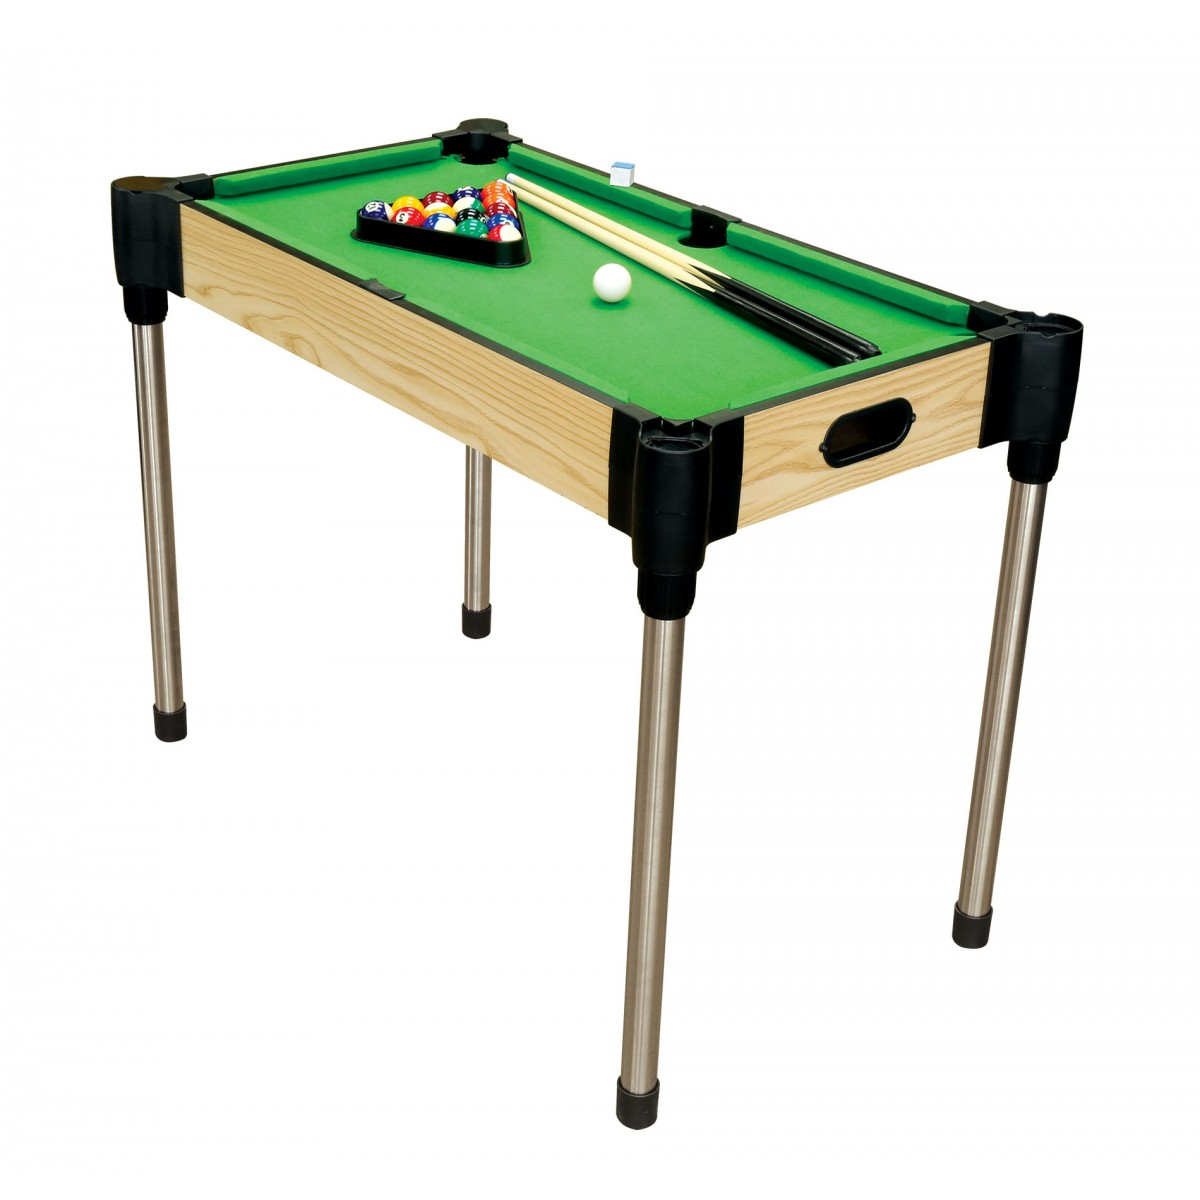 36 92cm 11 in 1 games table pool basketball table for 11 in 1 game table